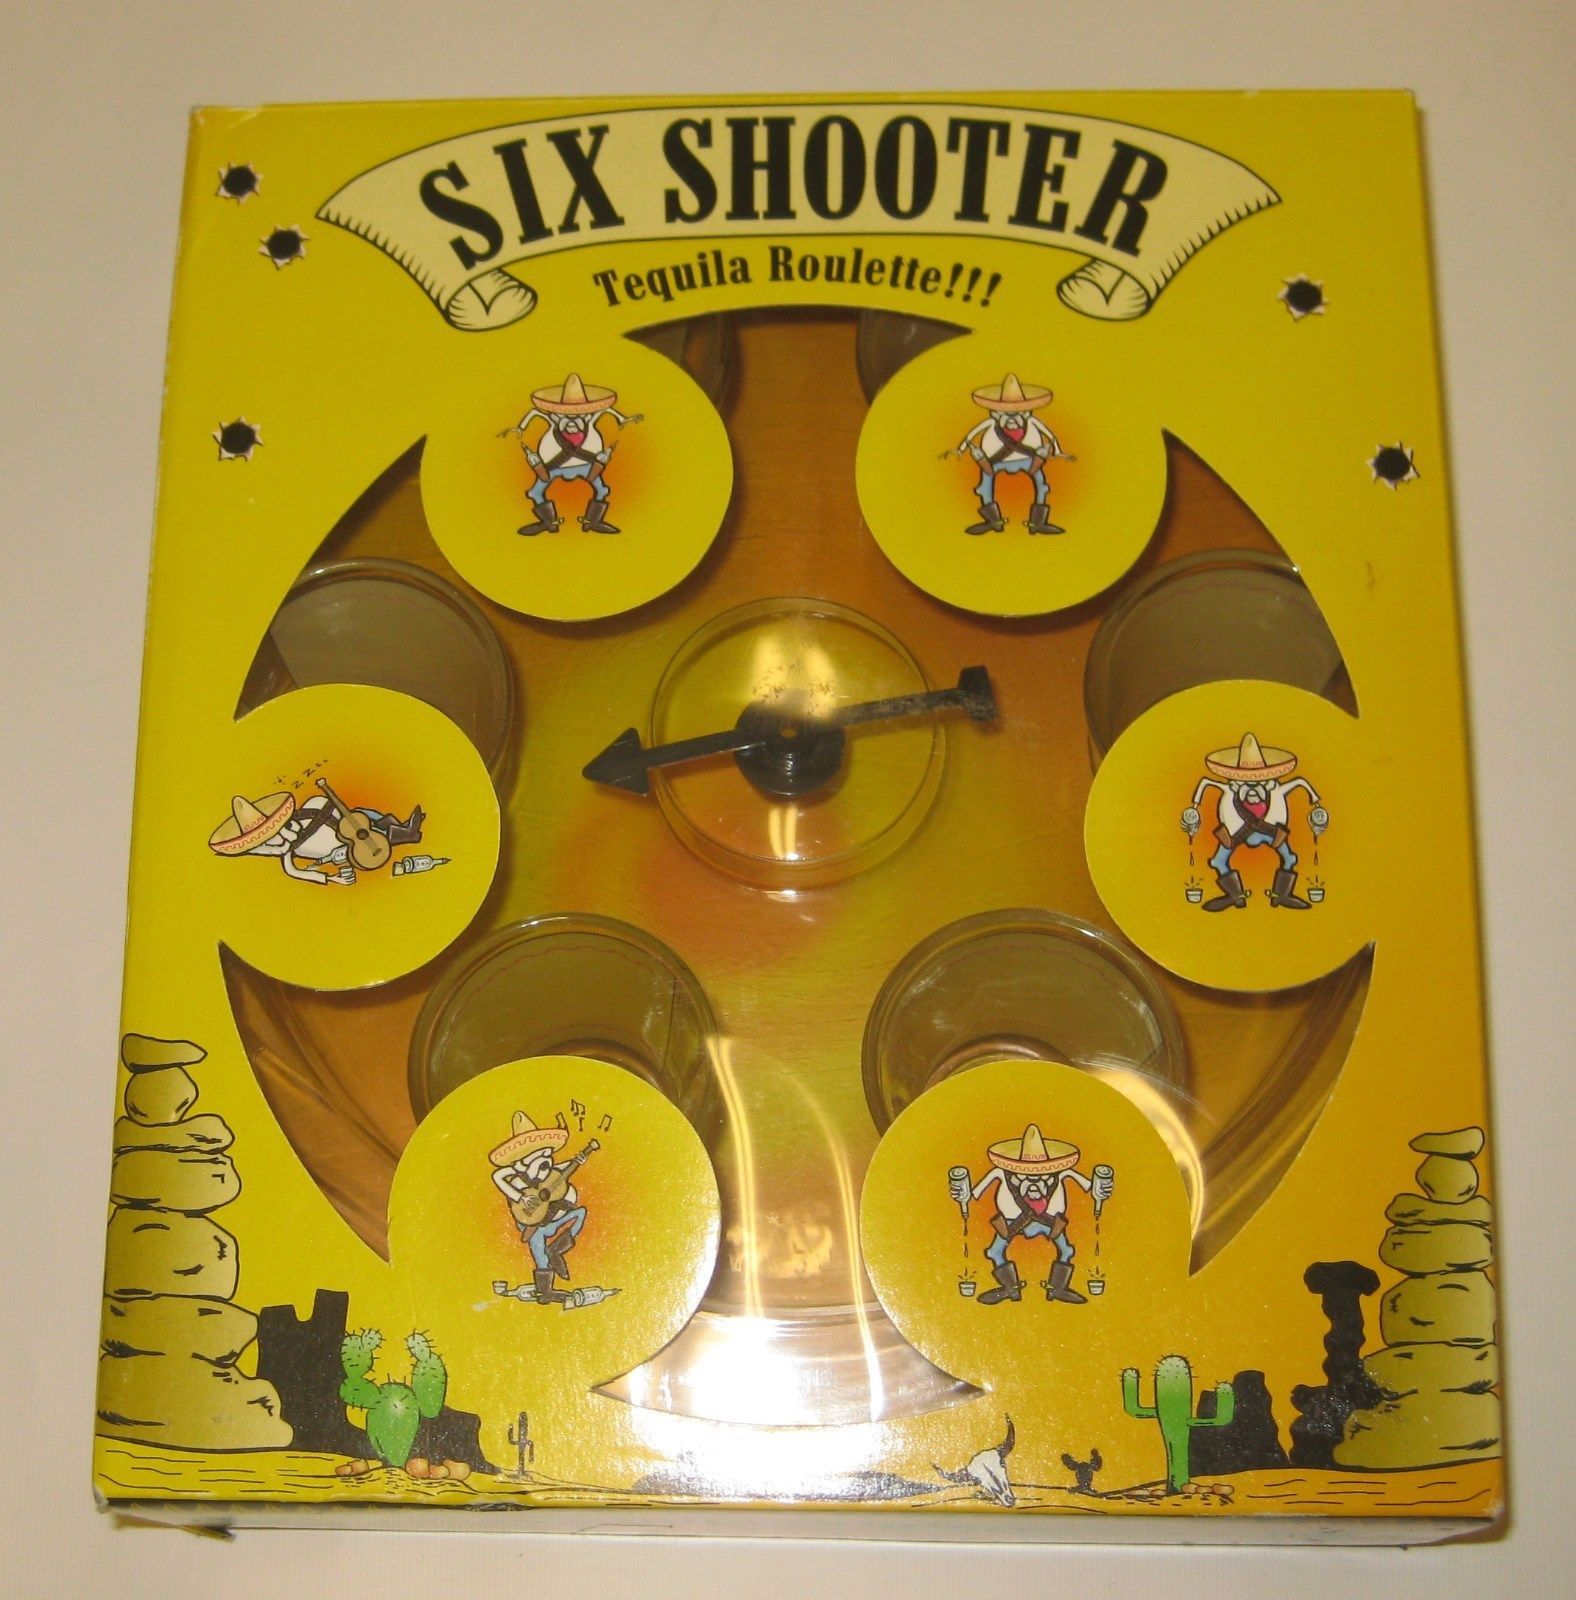 Primary image for Drinking Game  - Six Shooter Tequila Roulette game - New